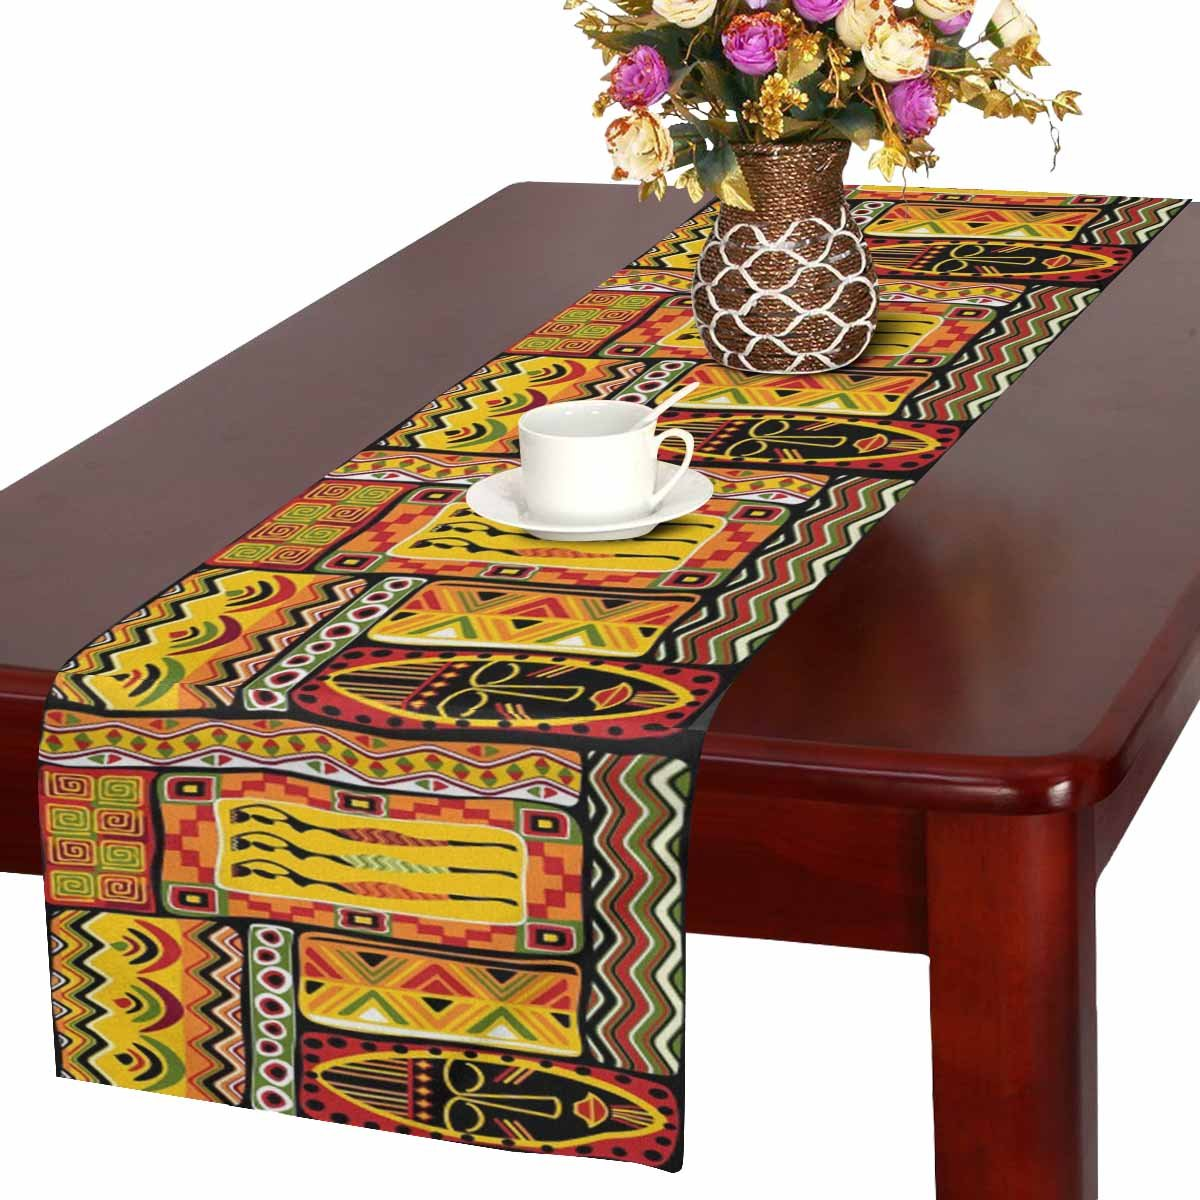 InterestPrint African Artwork African Woman Historical Elements Orange Table Runner Cotton Linen Home Decor for Wedding Party Banquet Decoration 16 x 72 Inches